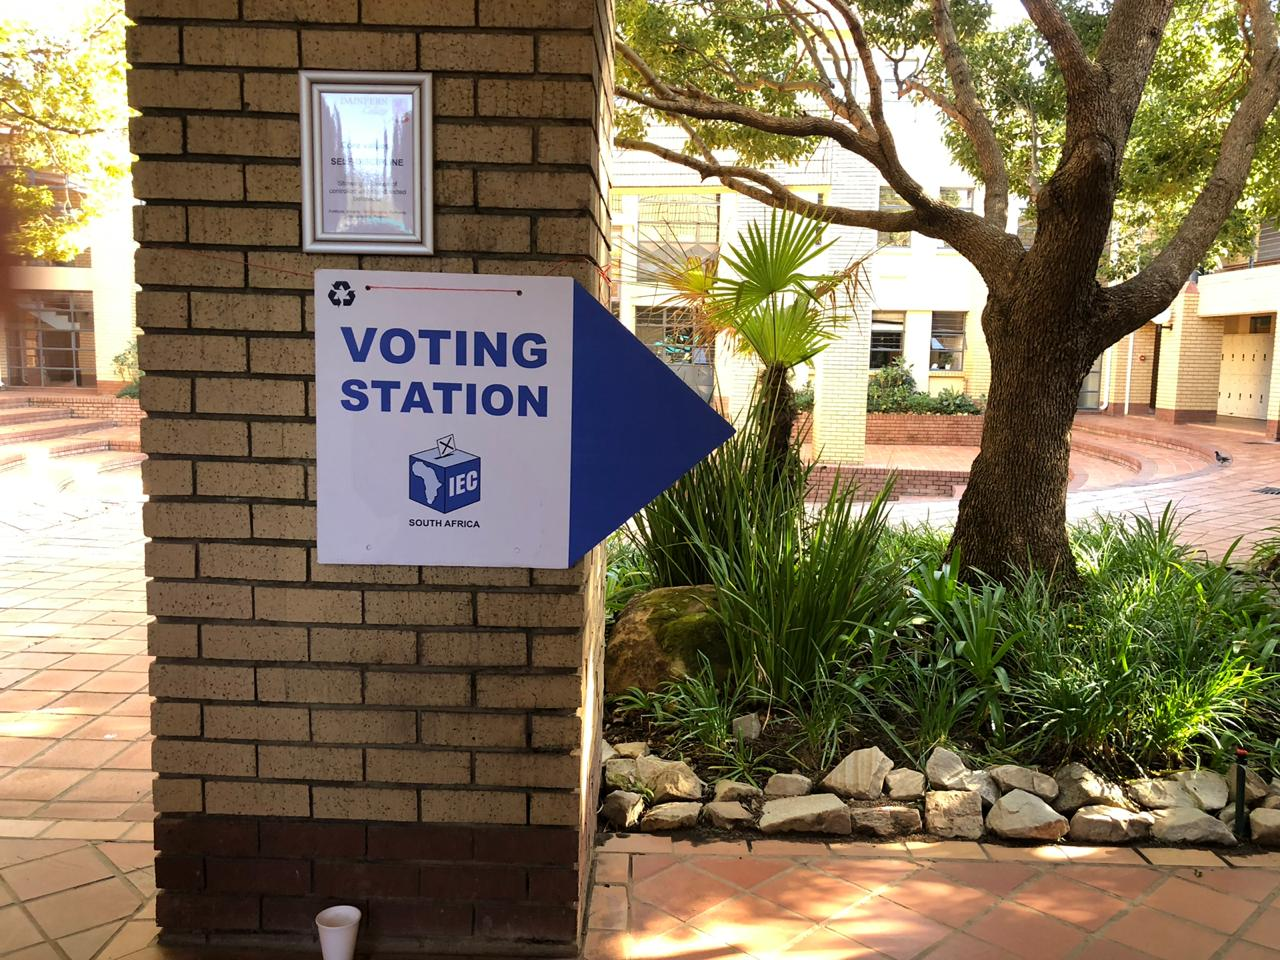 [ELECTIONS] Special votes started this morning across the country